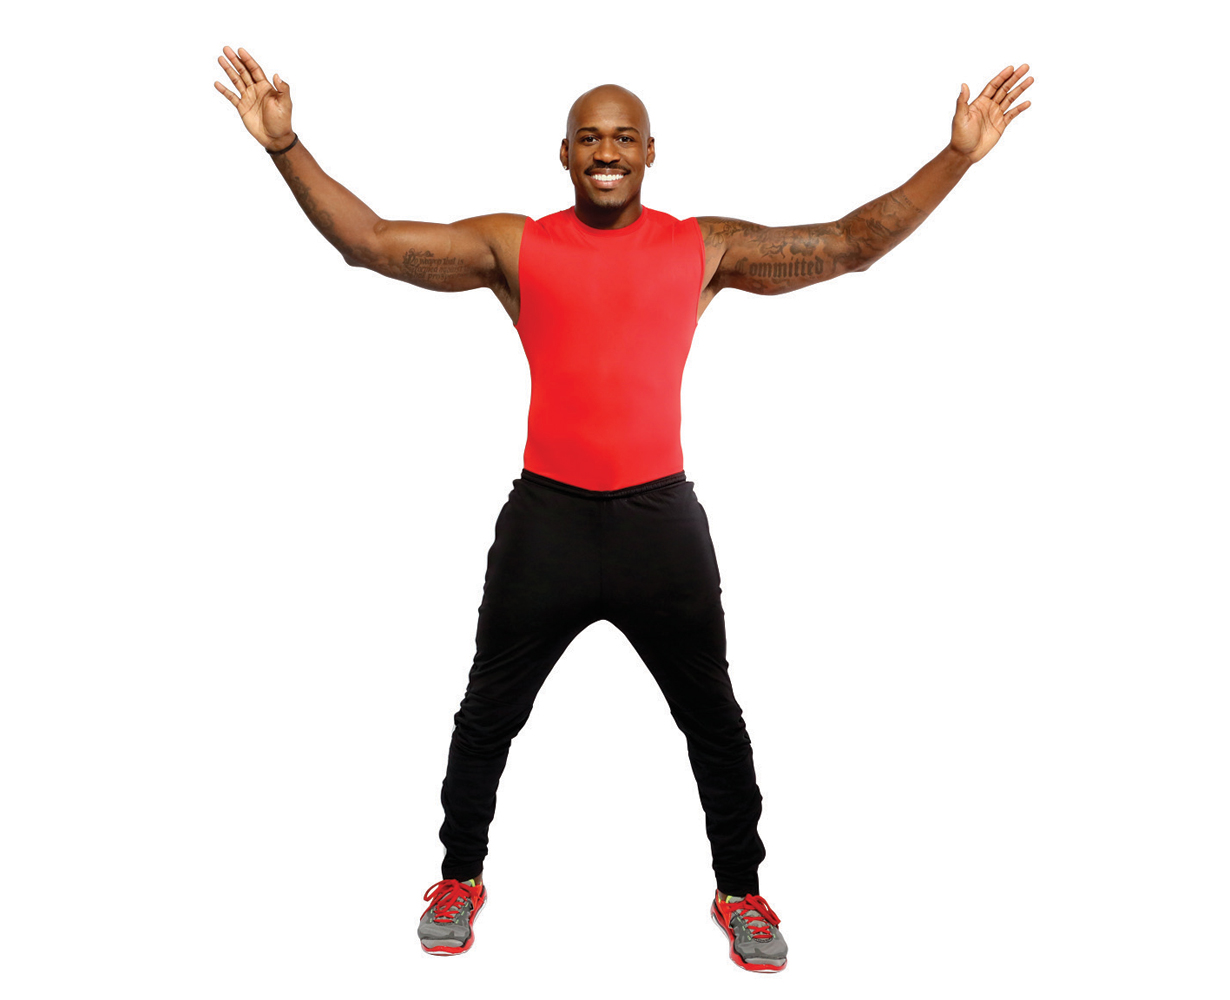 3. Jumping Jacks (30 seconds)